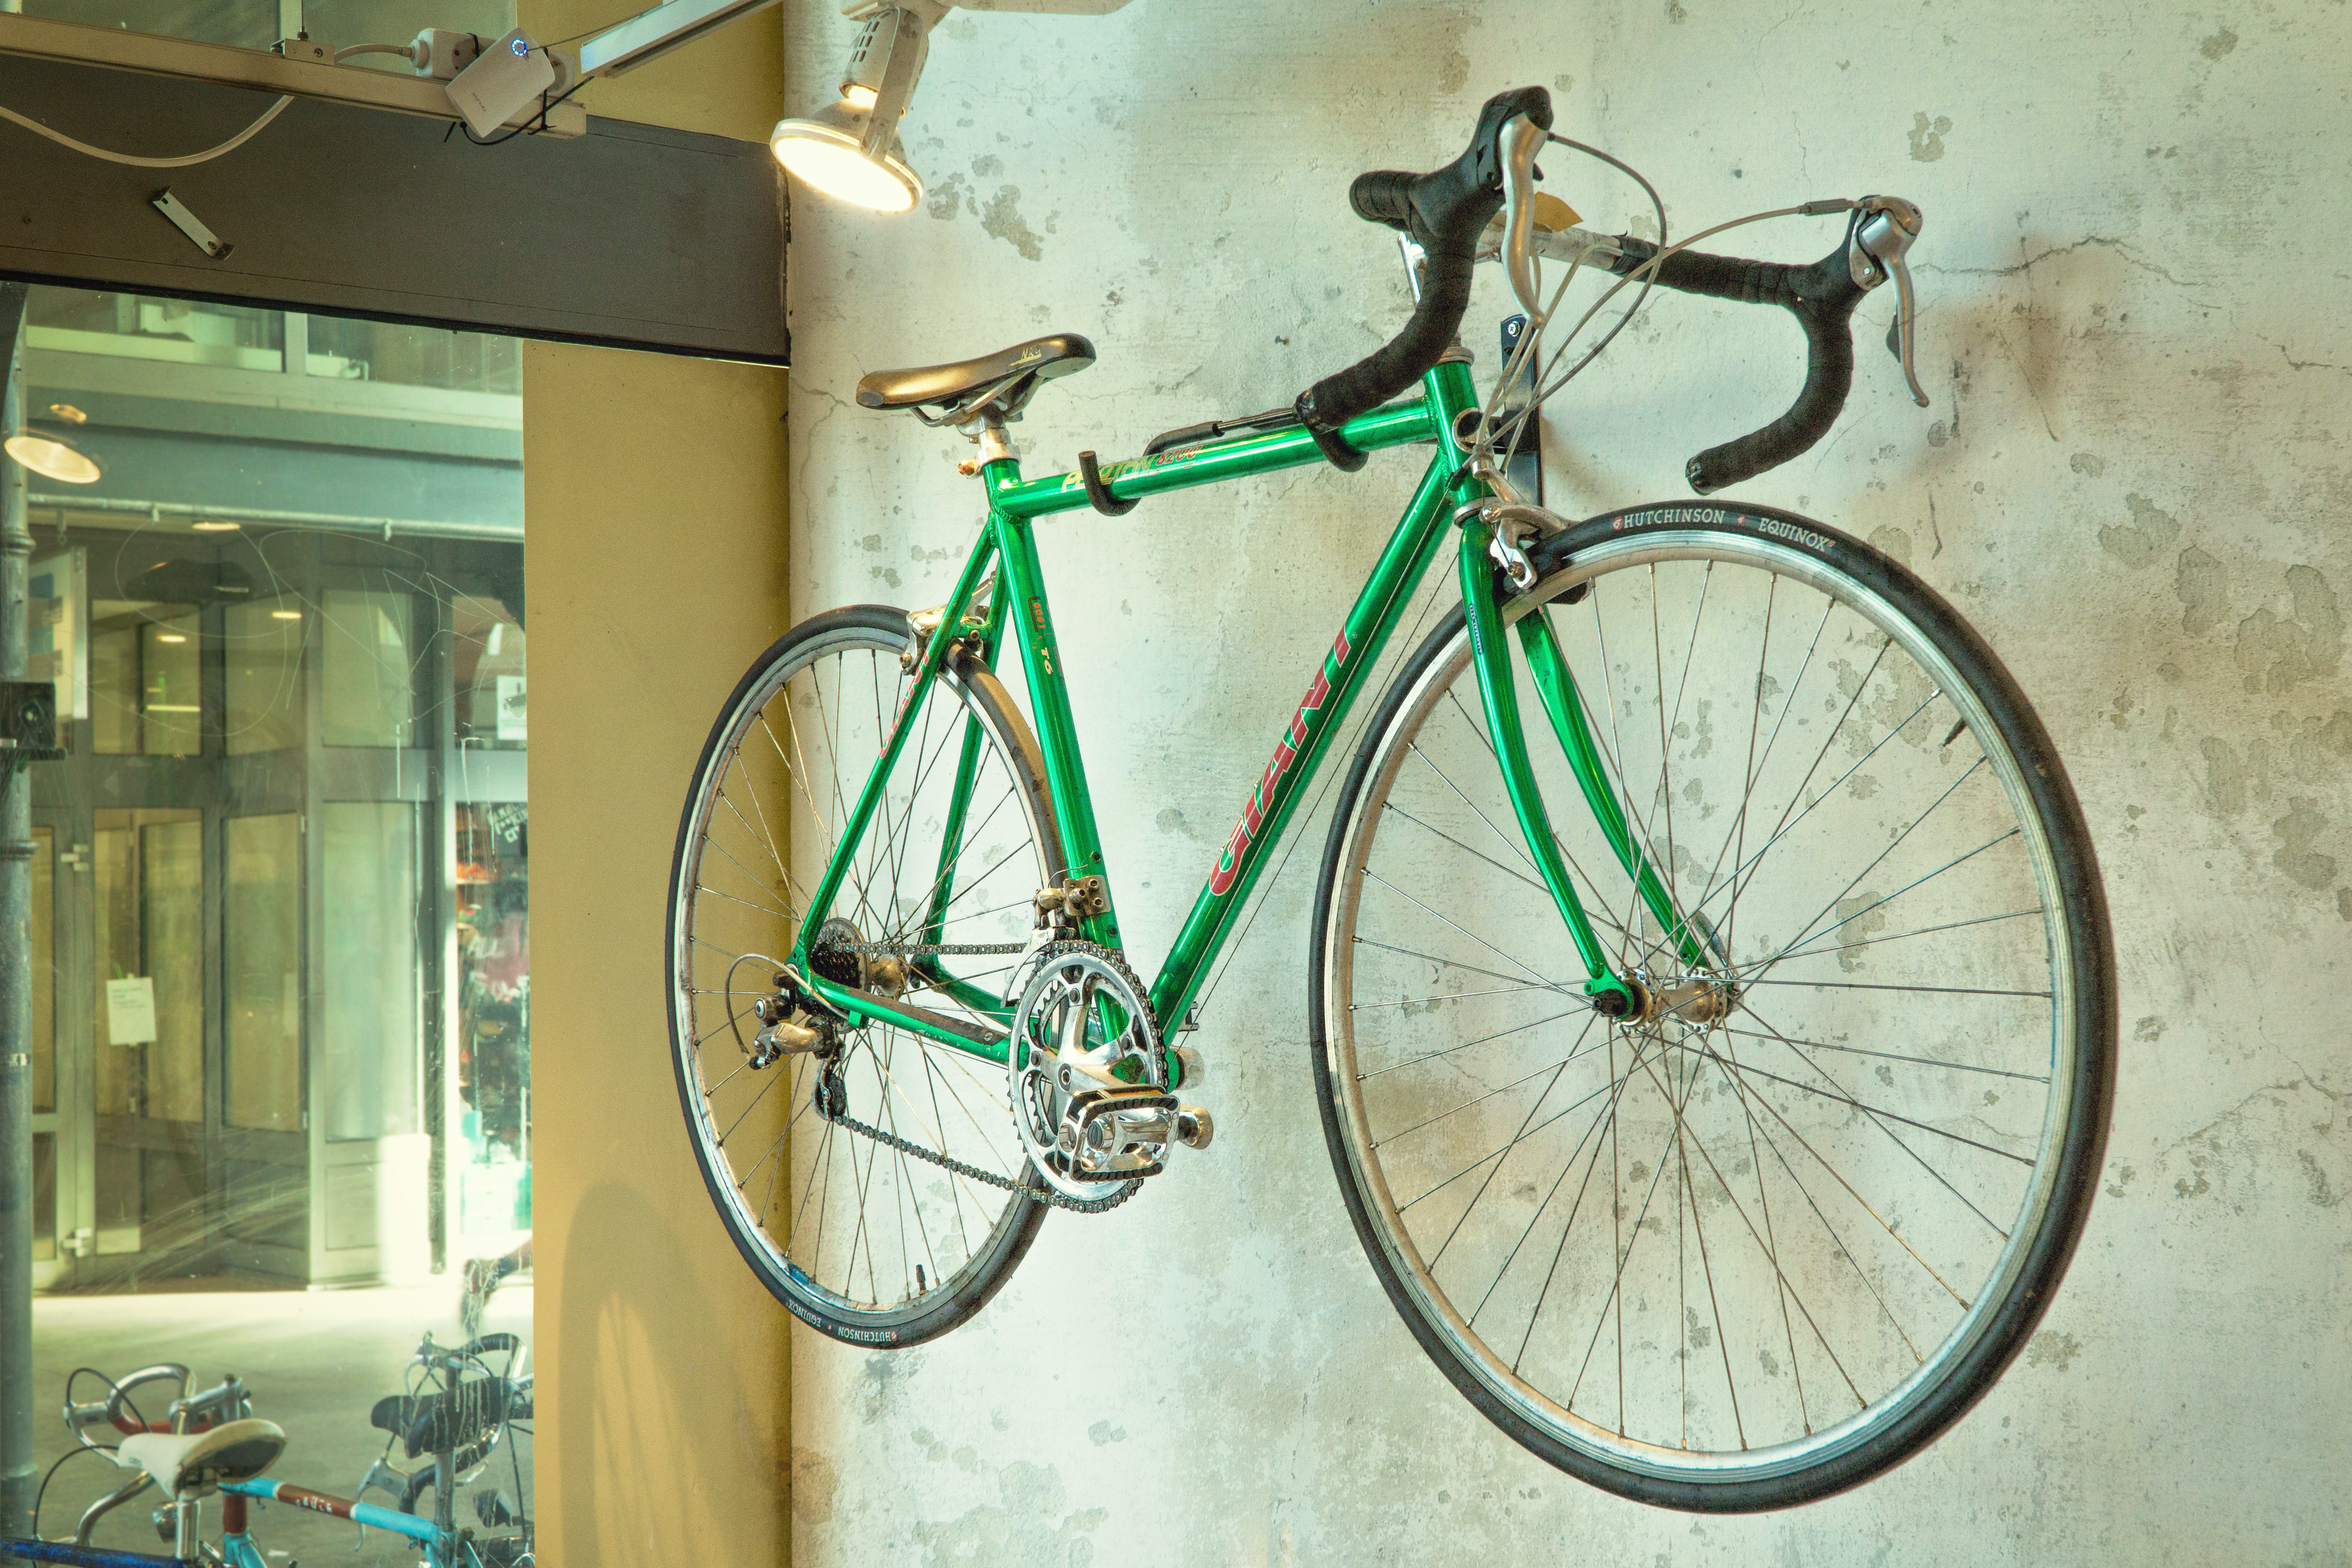 Green Road Bicycle Hanged on Wall